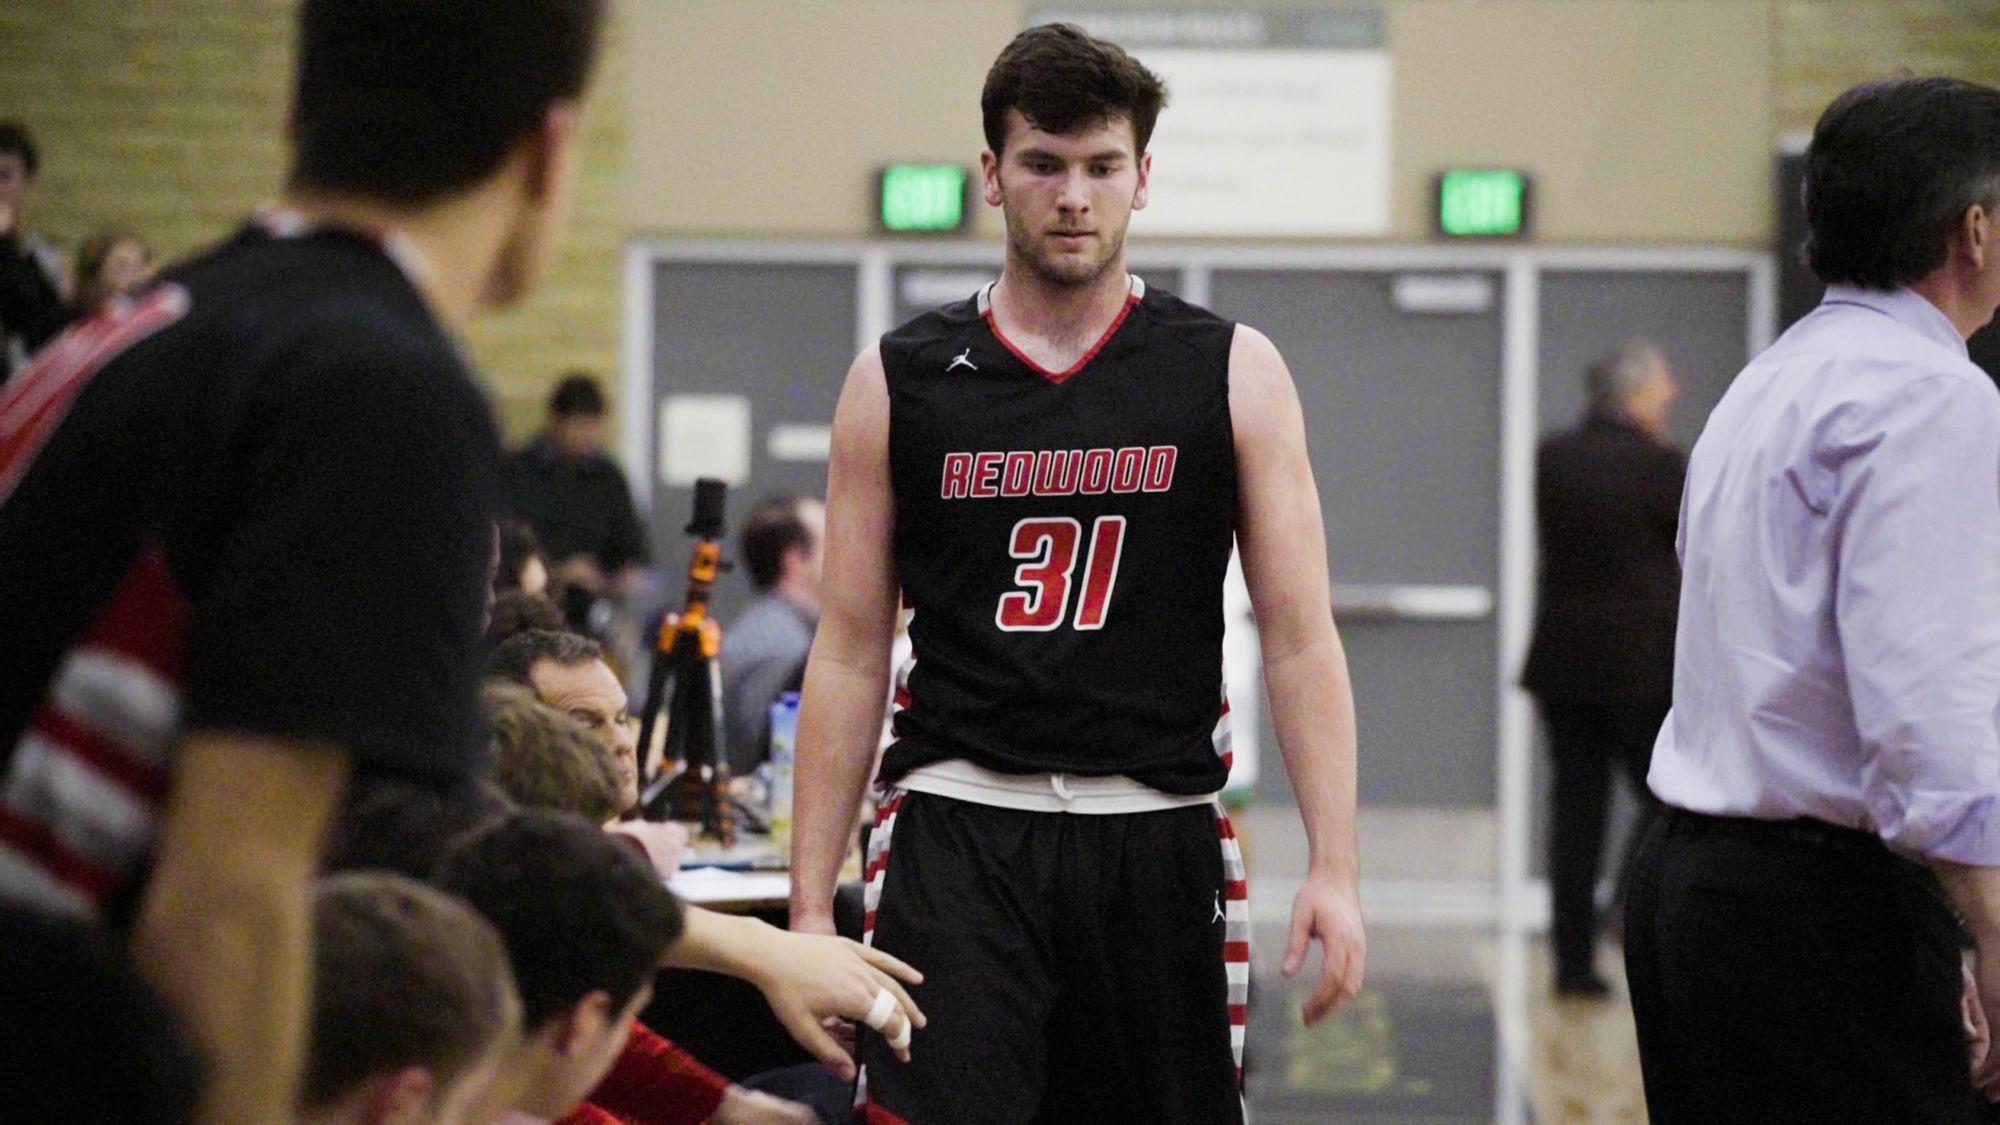 Redwood fights hard and get the horns against Branson